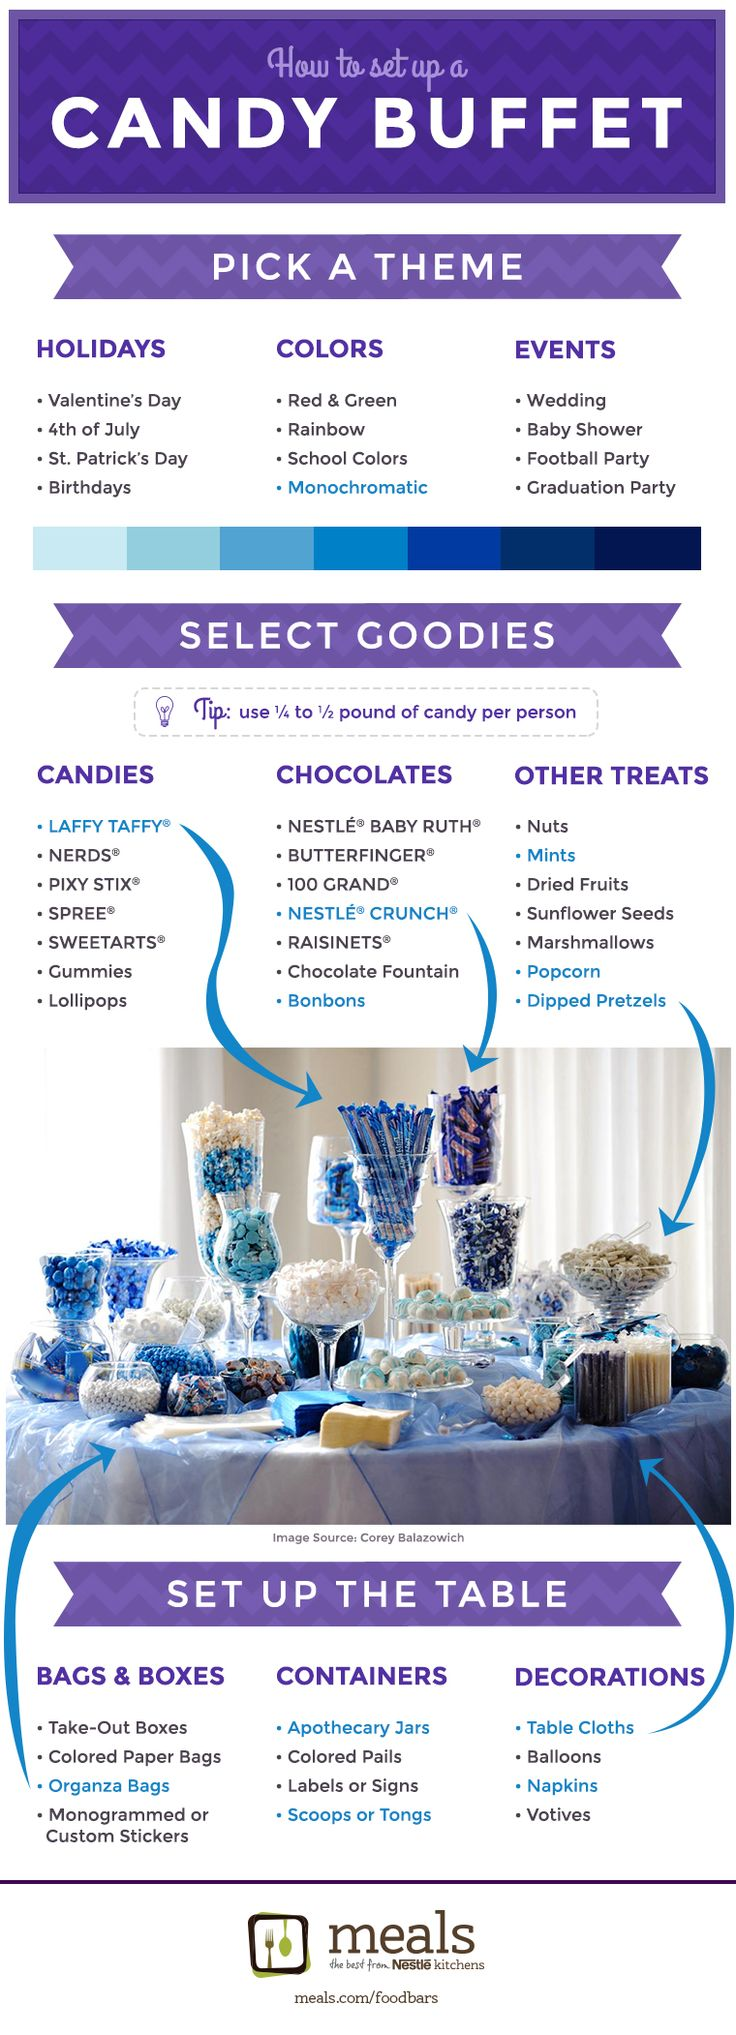 Candy Buffet |Meals.com - Mix 'em, match 'em or melt 'em. However you display your candy, it's a food bar that's sure to be a sweet success. Make your own candy treats with our recipes or enjoy the sheer simplicity of setting out store-bought candy for an instant party! #partyideas #candybuffet #candybar #candy